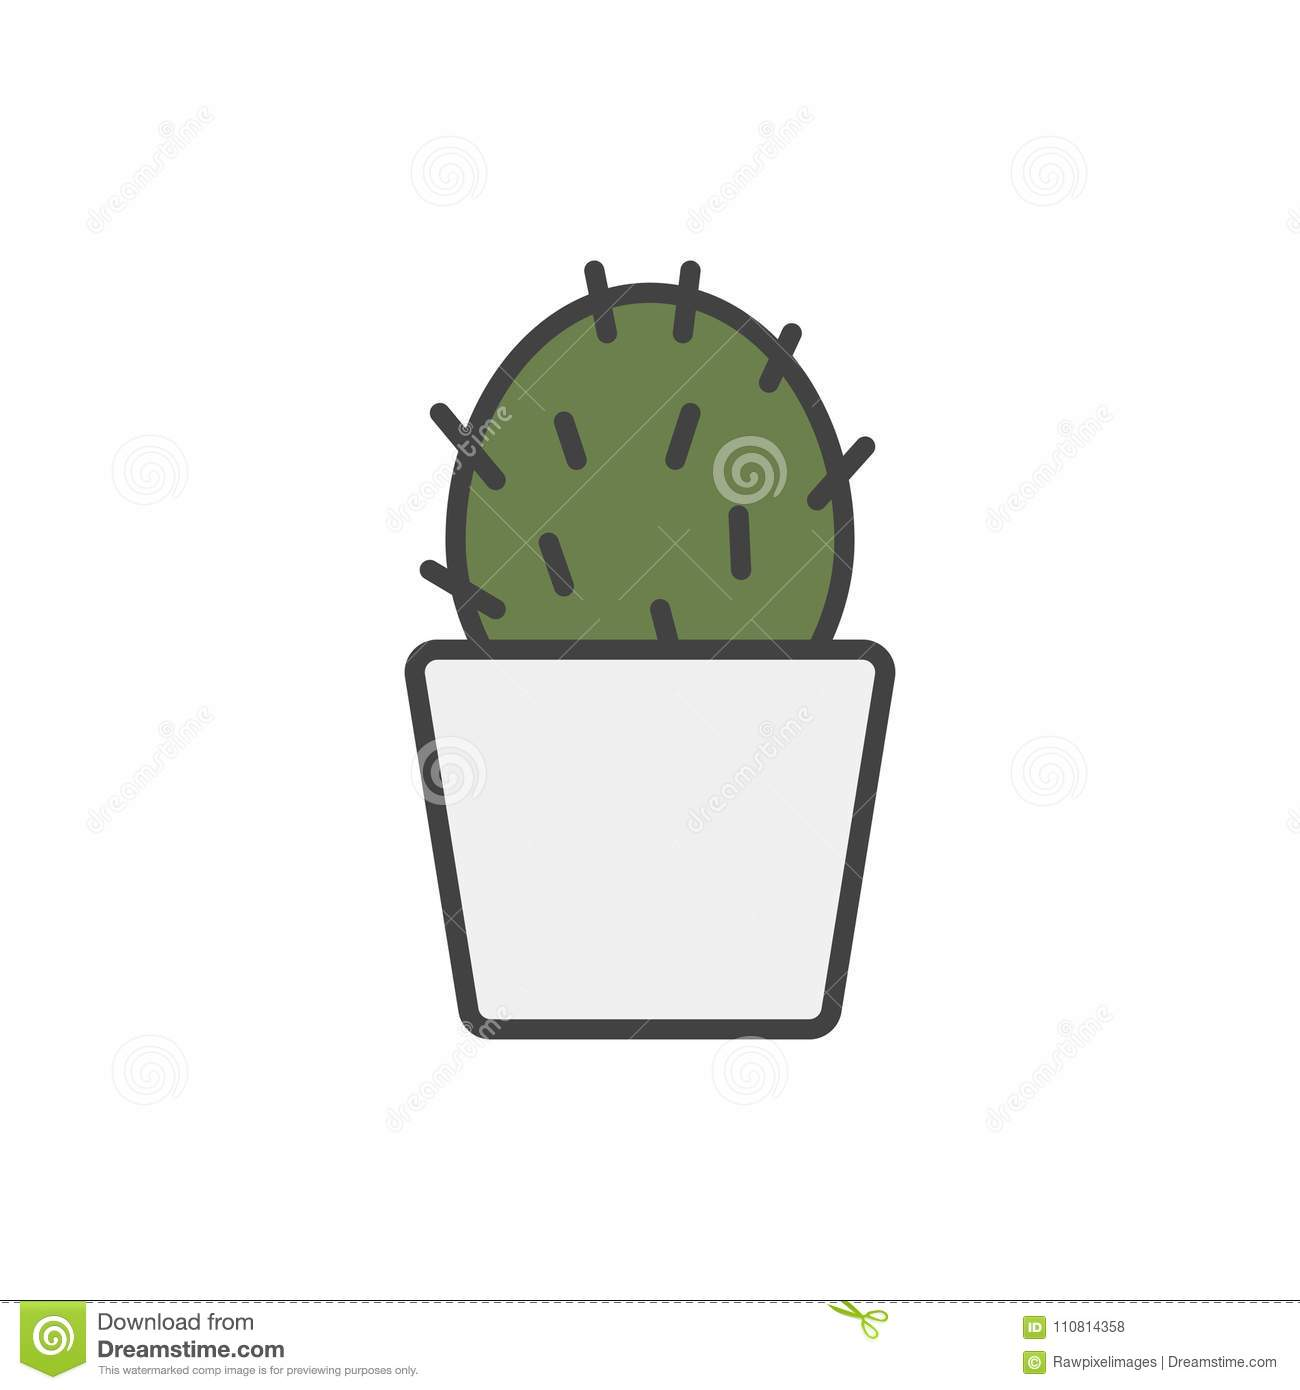 Illustration of house plants isolated